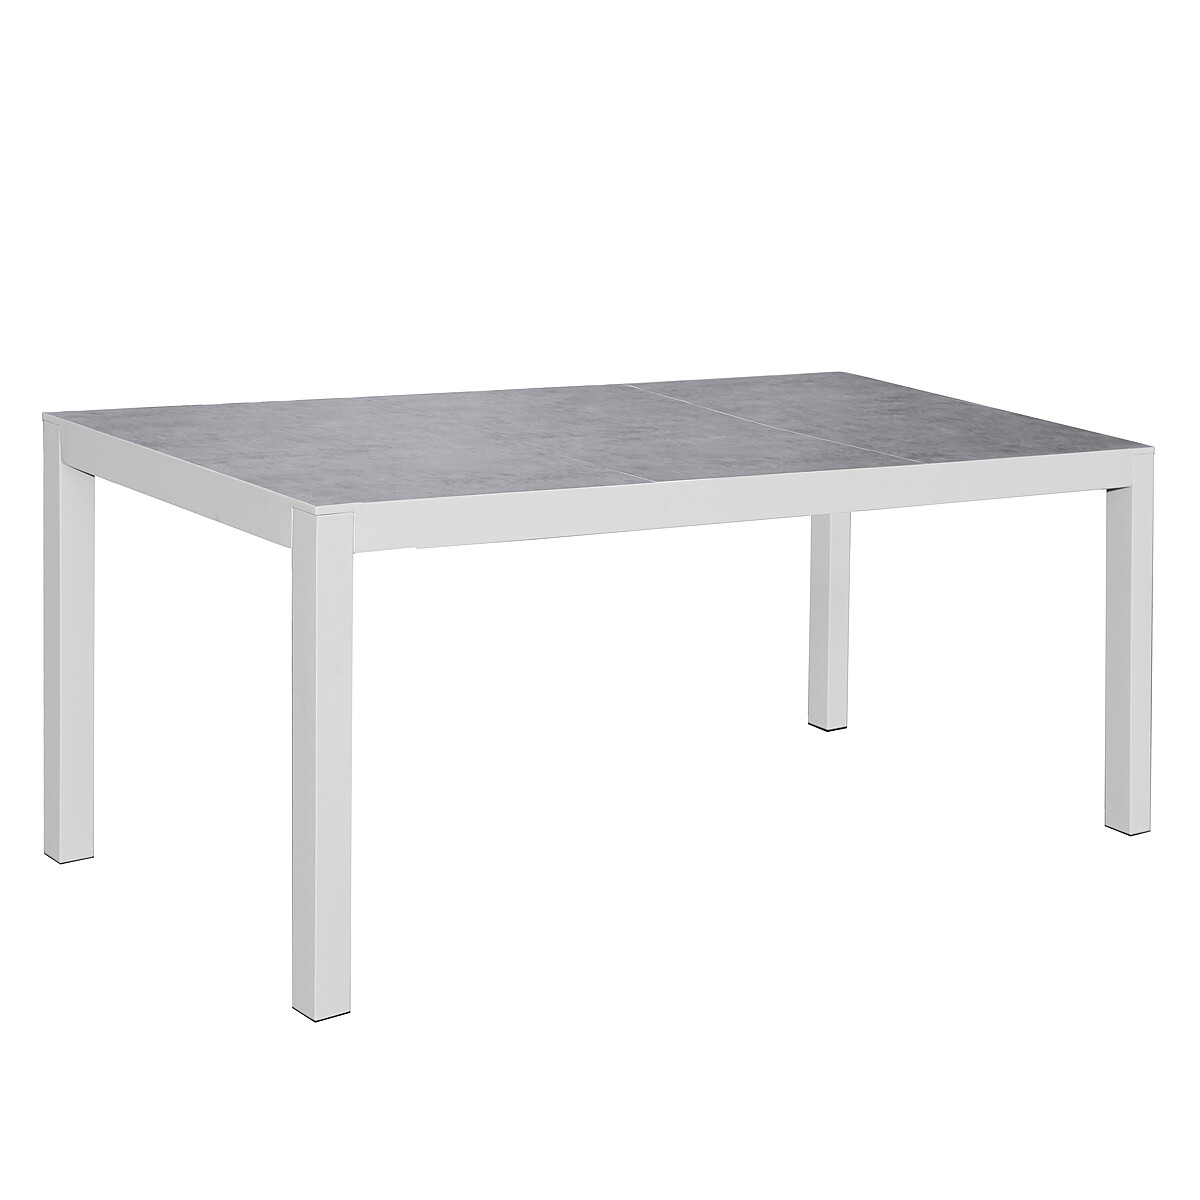 Aluminum Frame Temper Glass Top Outdoor Dining Table